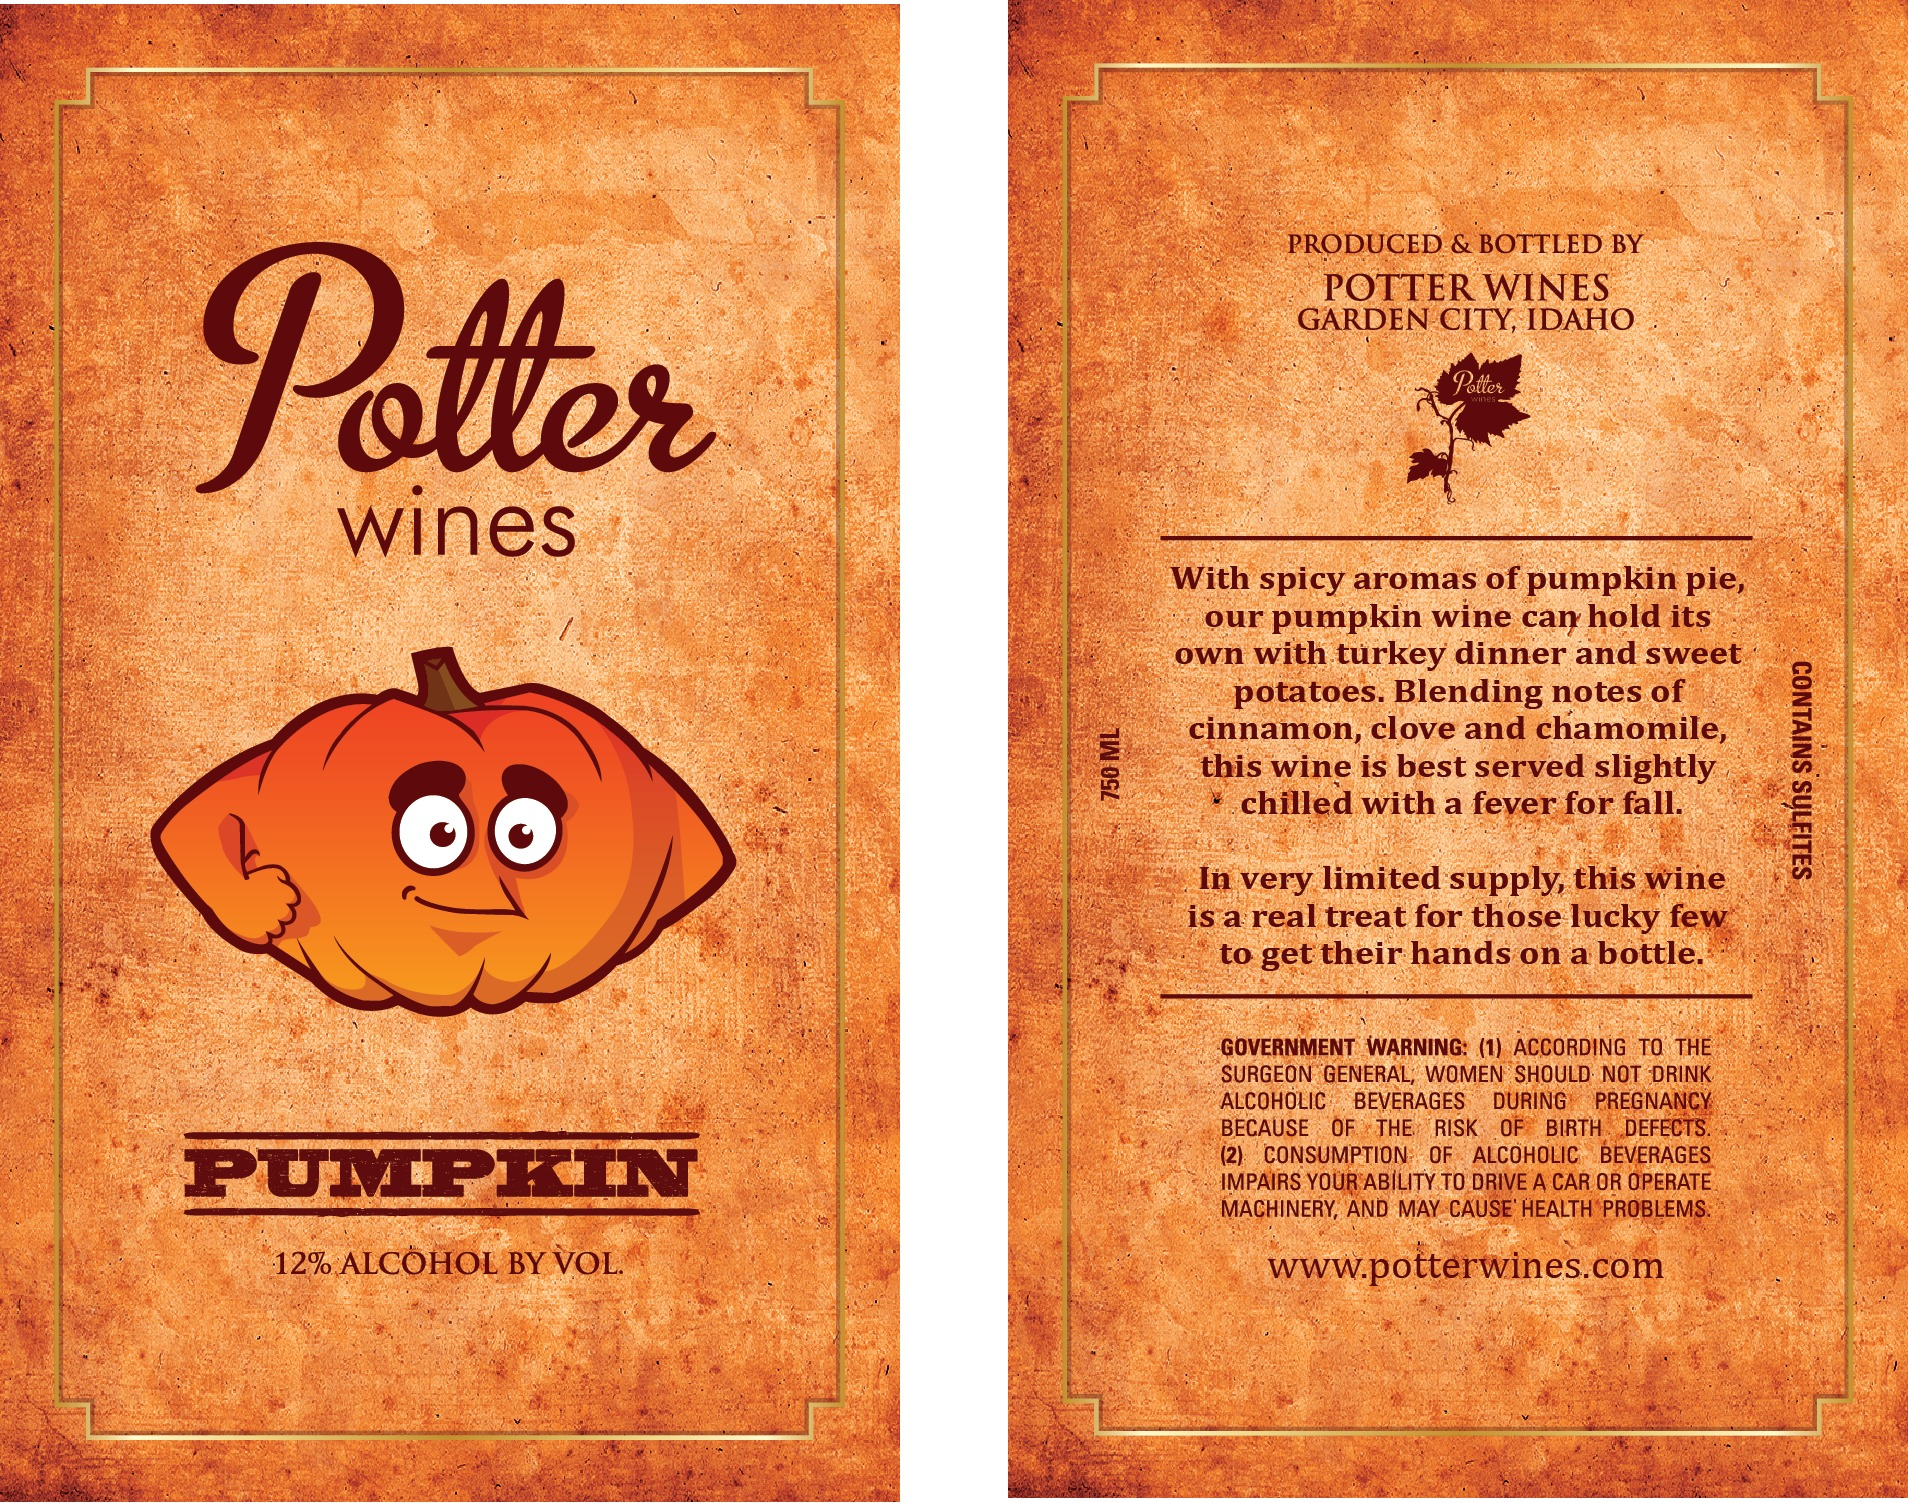 Potter_Wines_Pumpkin_Label1.jpg